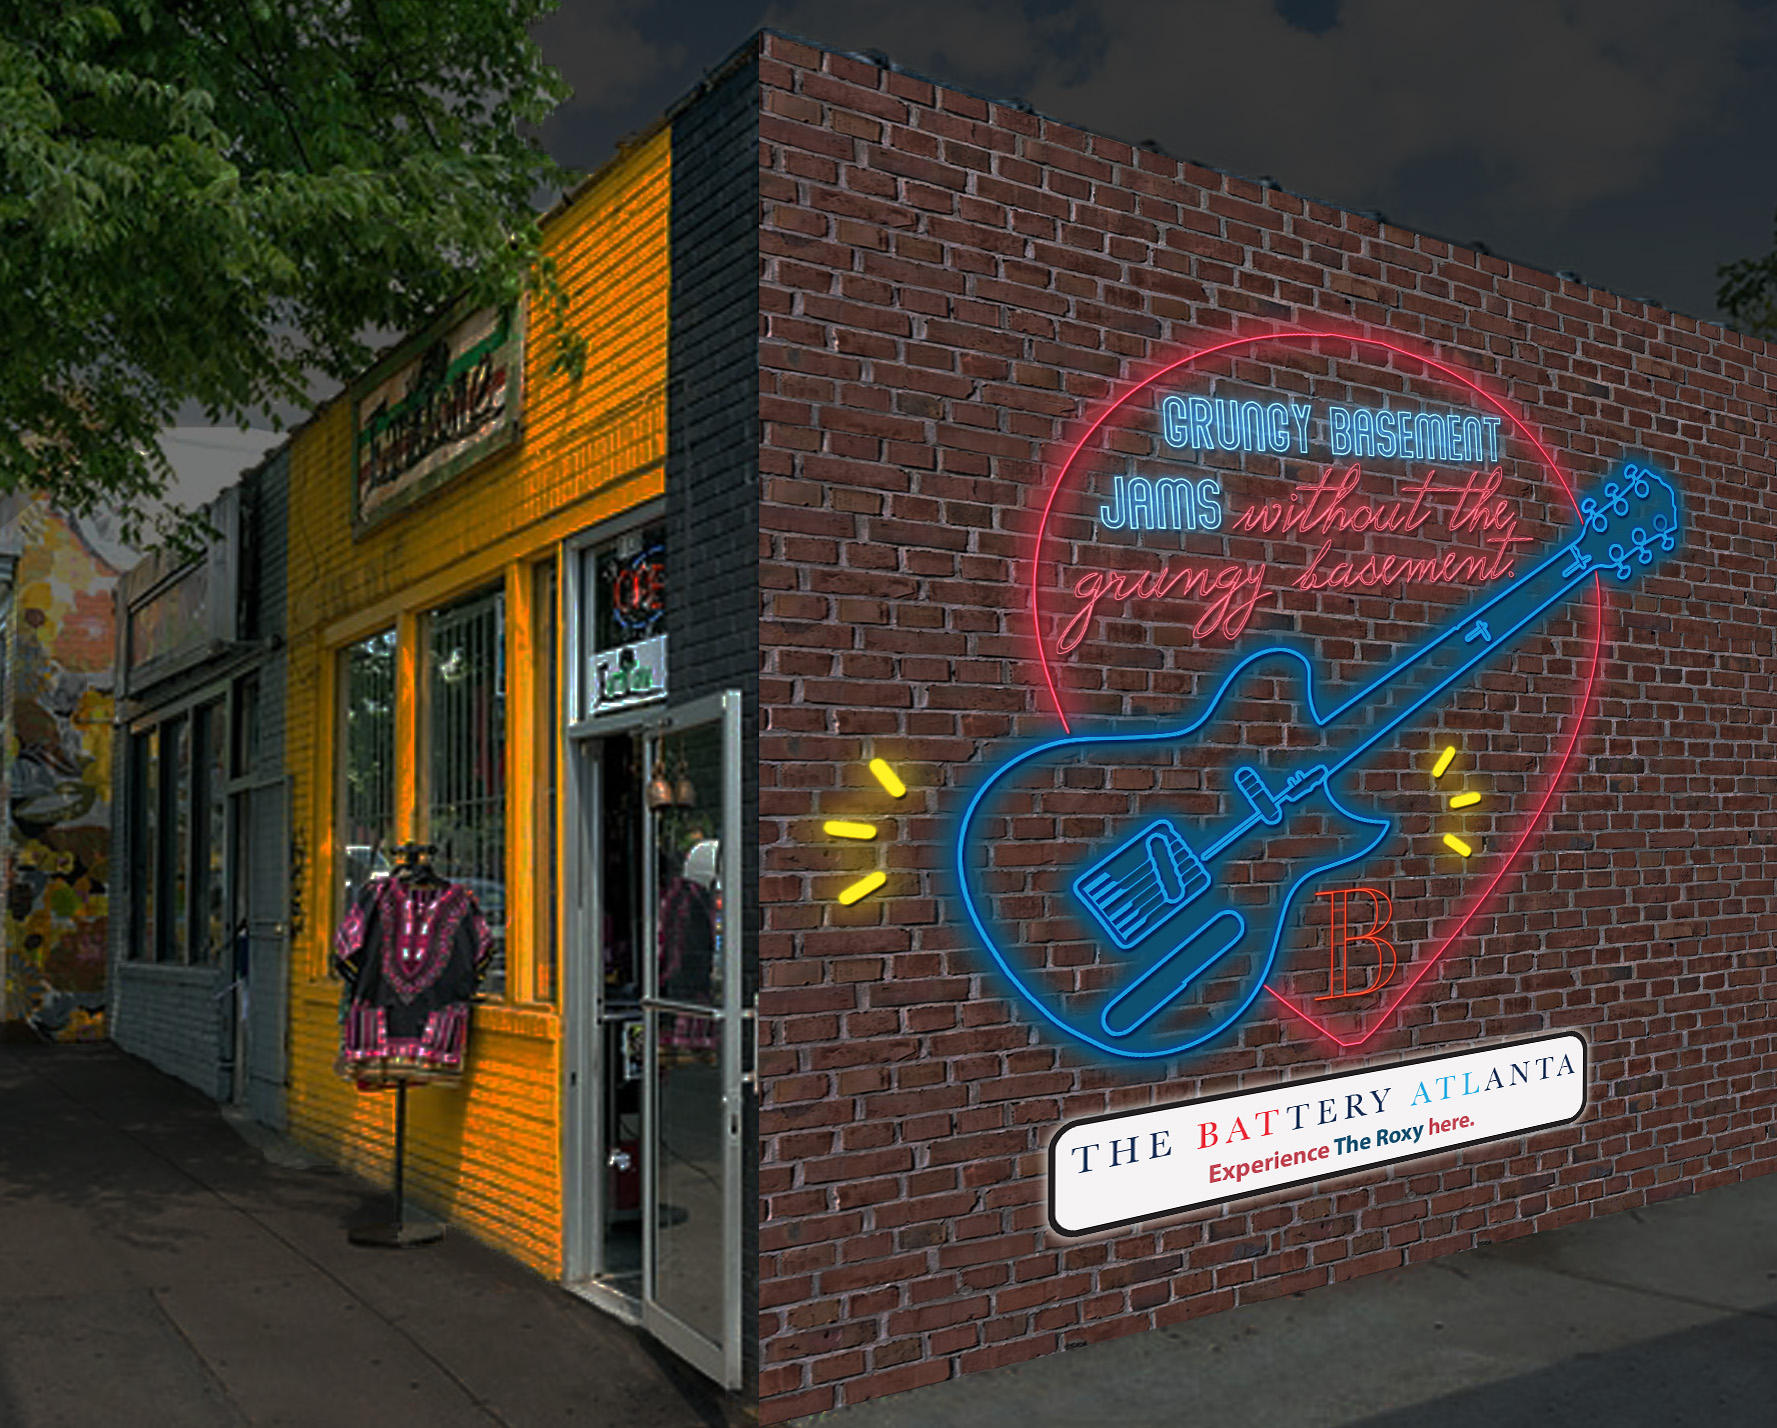 Little Five Points (cool, edgy area known for dive bars and live music)